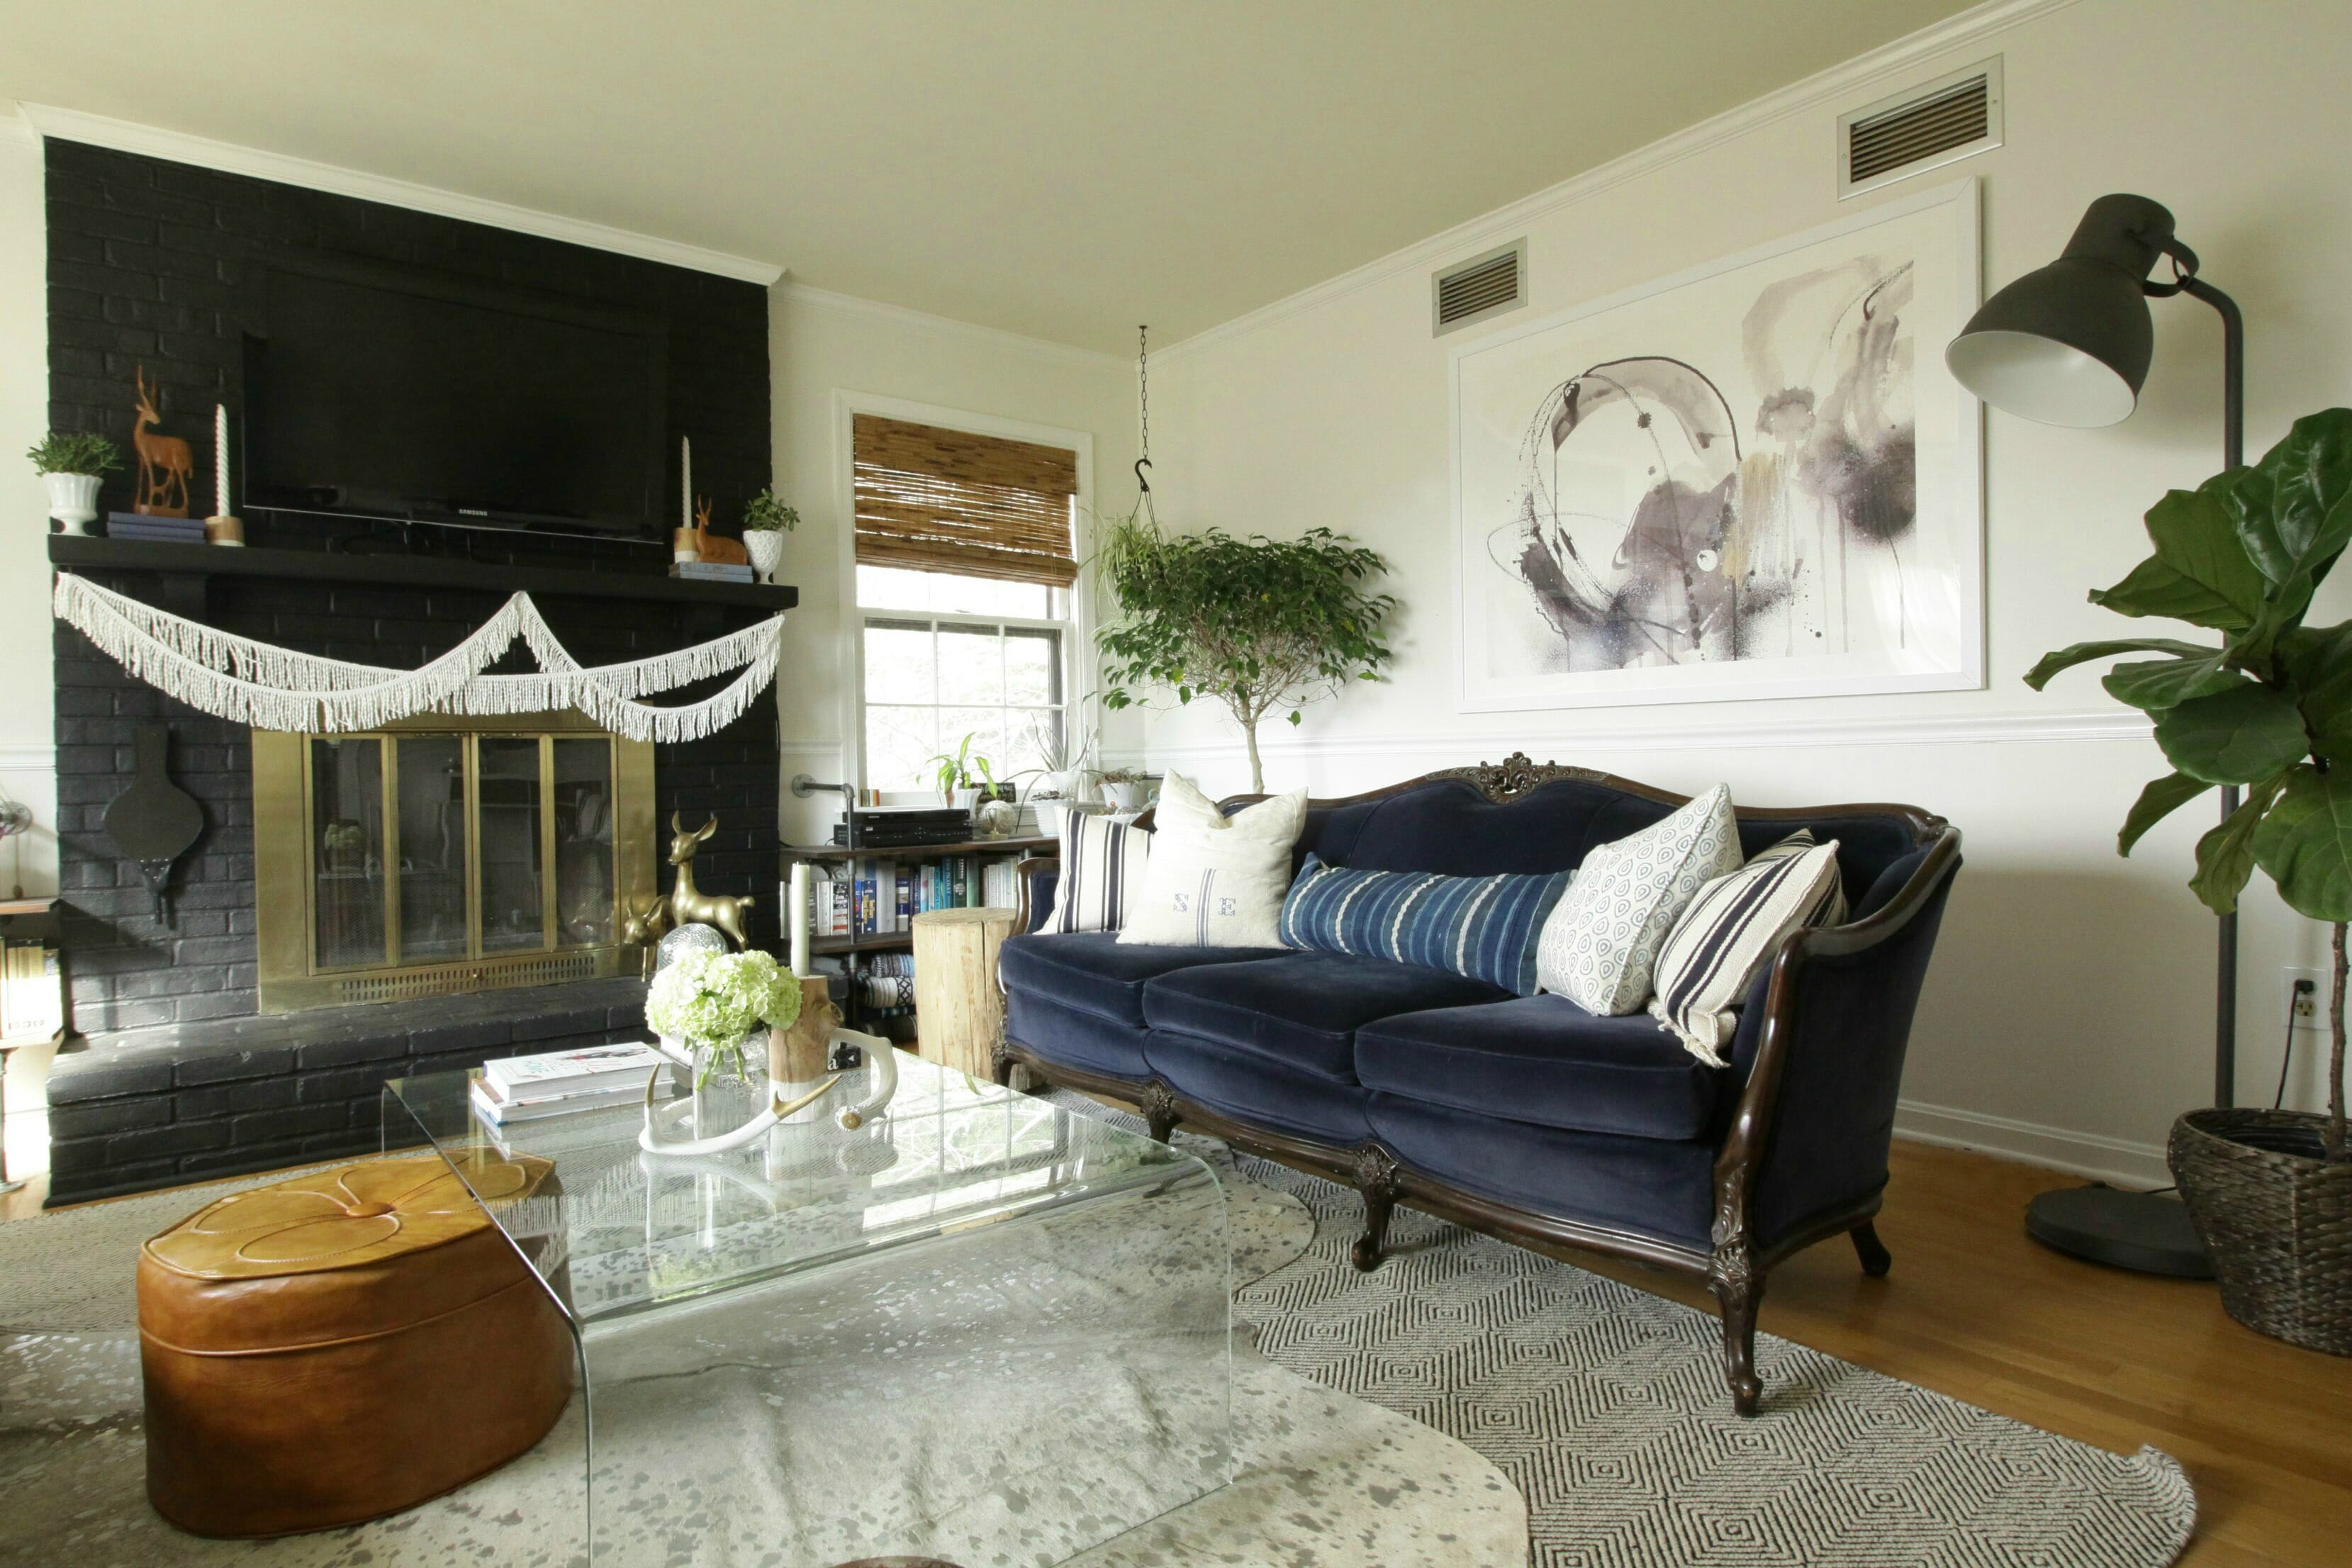 Living Room Art From Minted Eclectic Black Fireplace Modern Boho